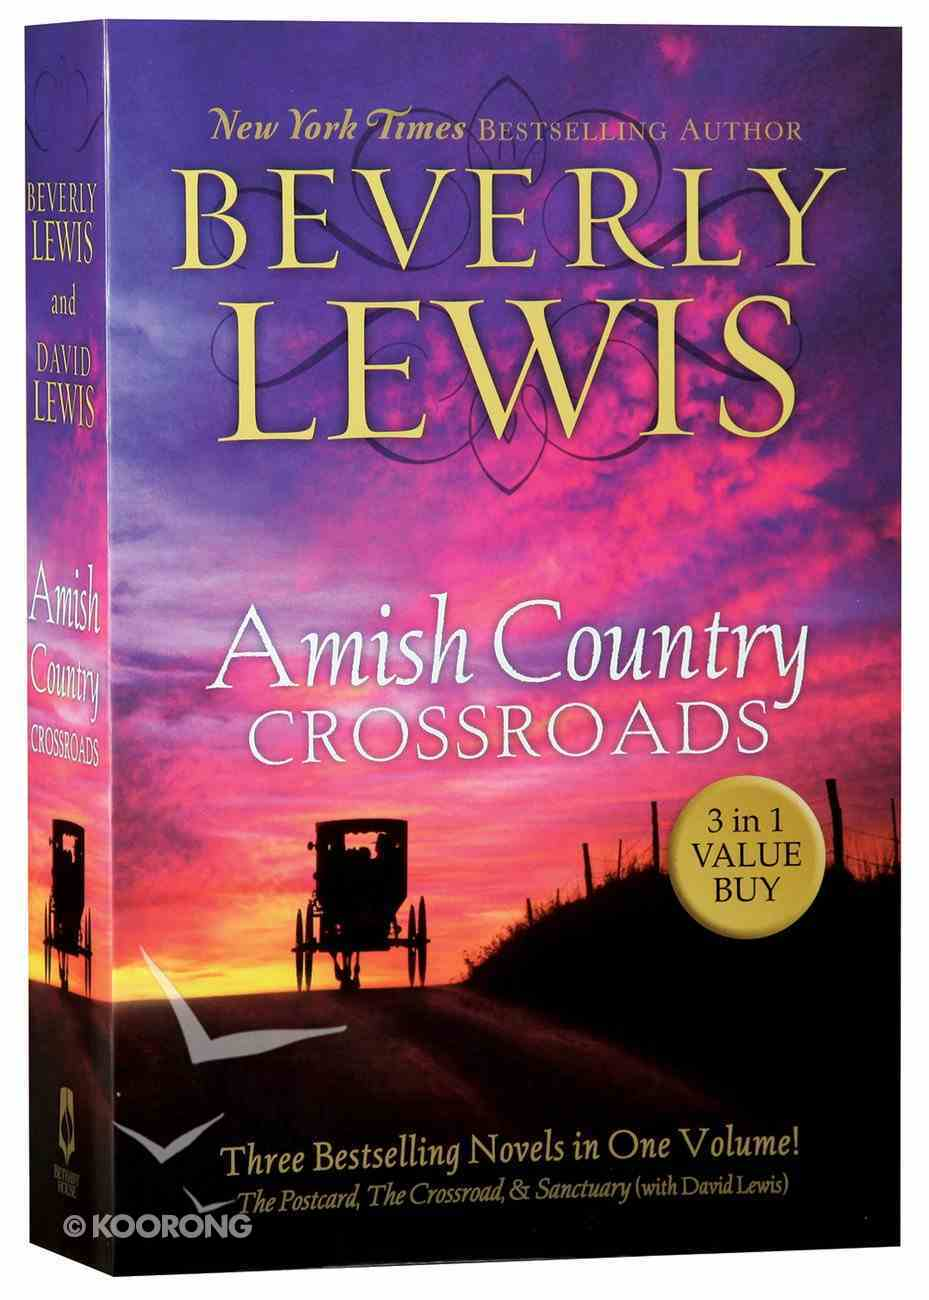 3in1: Amish Country Crossroads Paperback